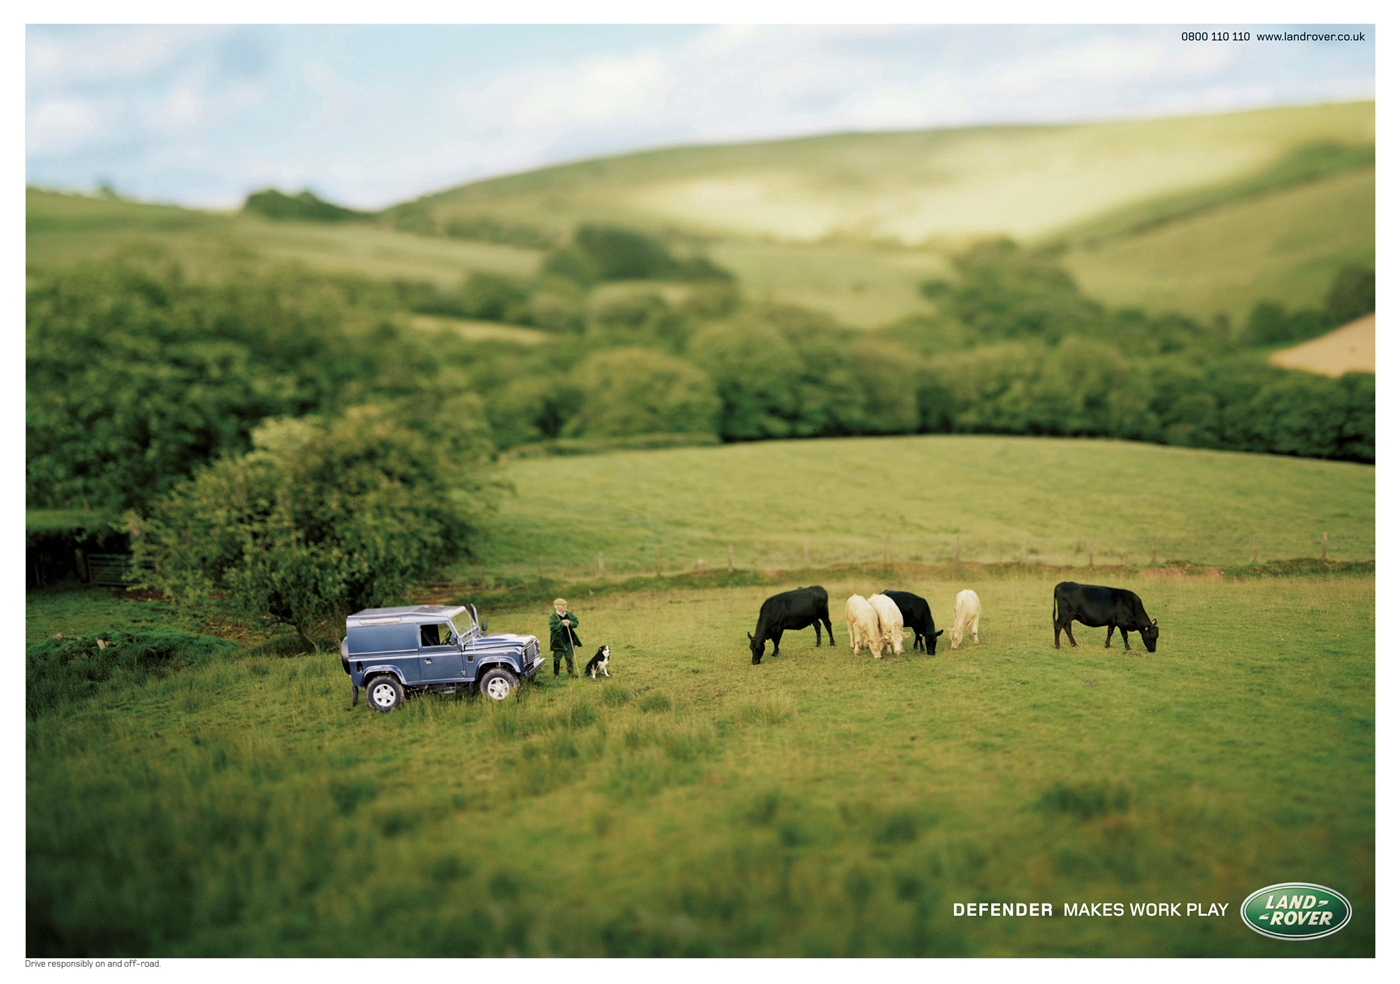 Your Favorite Land Rover Print Ad Land Rover Forums